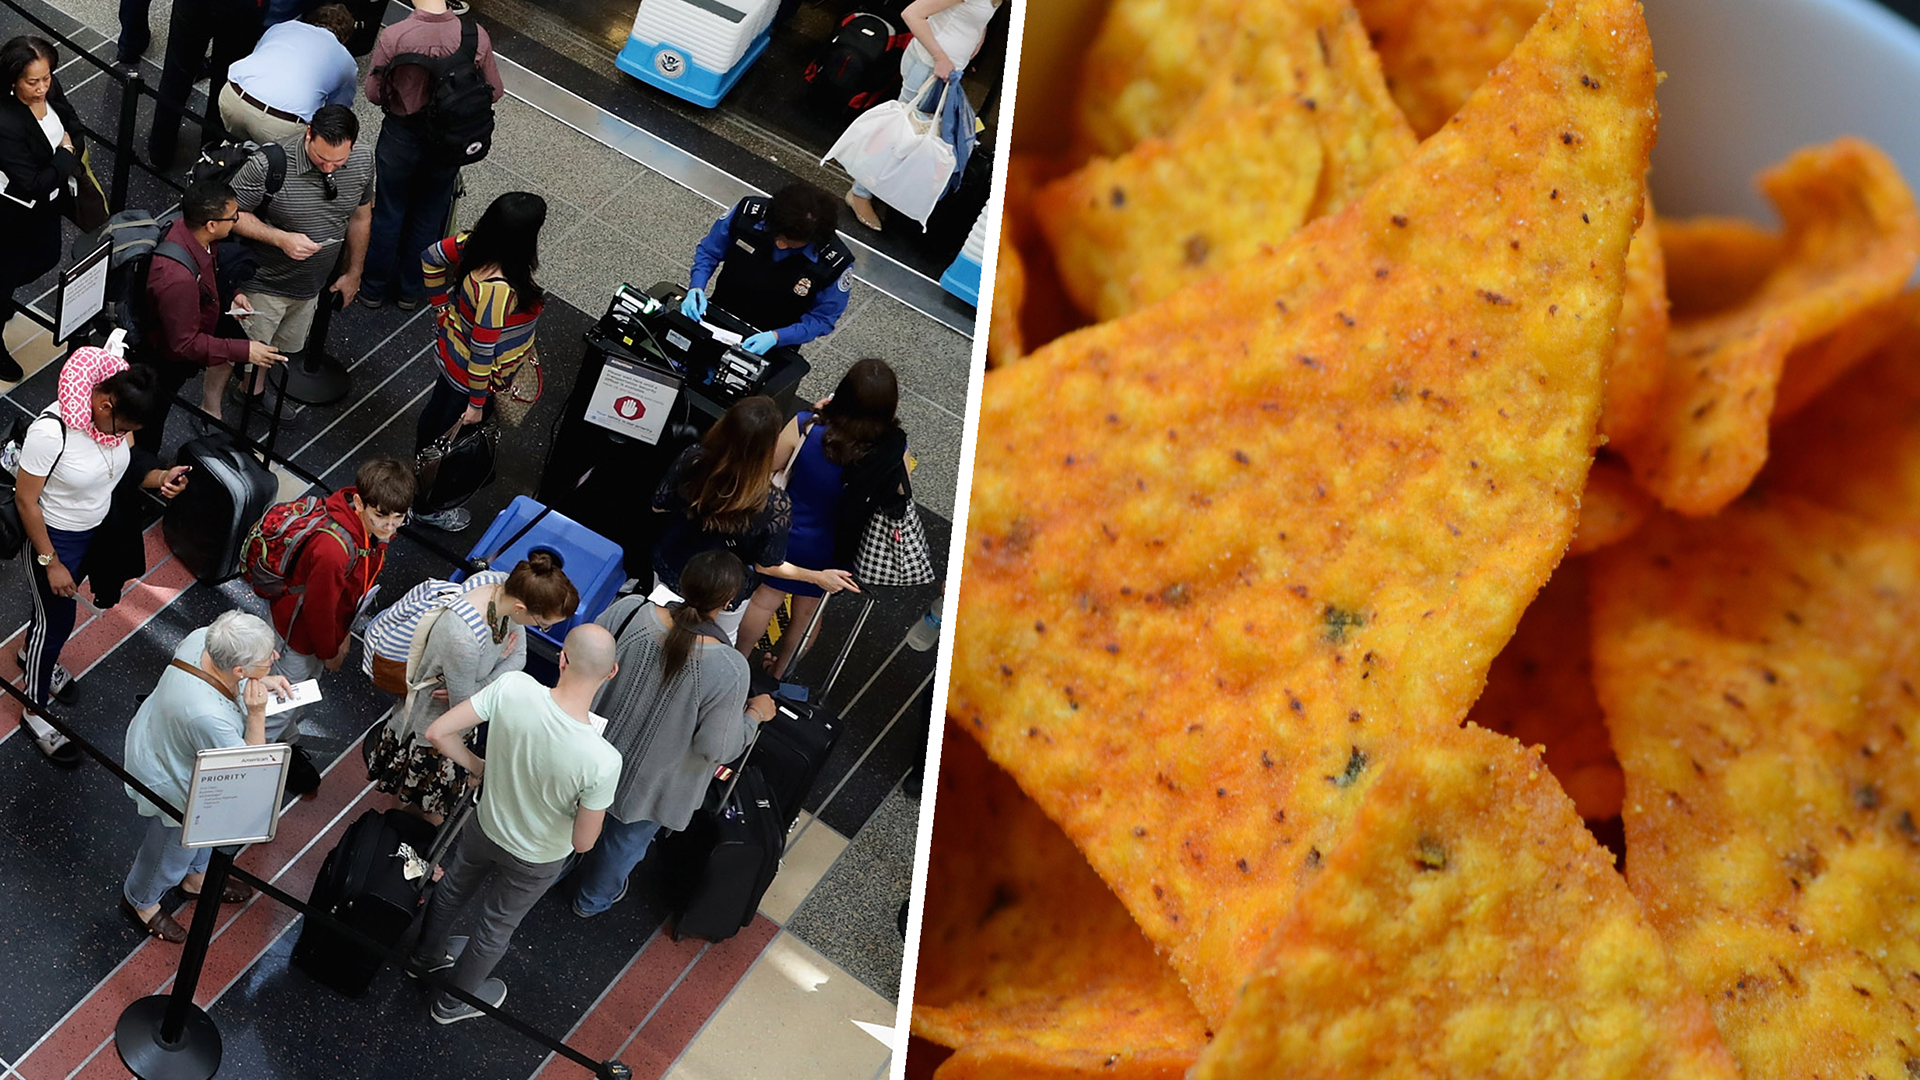 TSA screening may now involve removing snacks from carry-ons